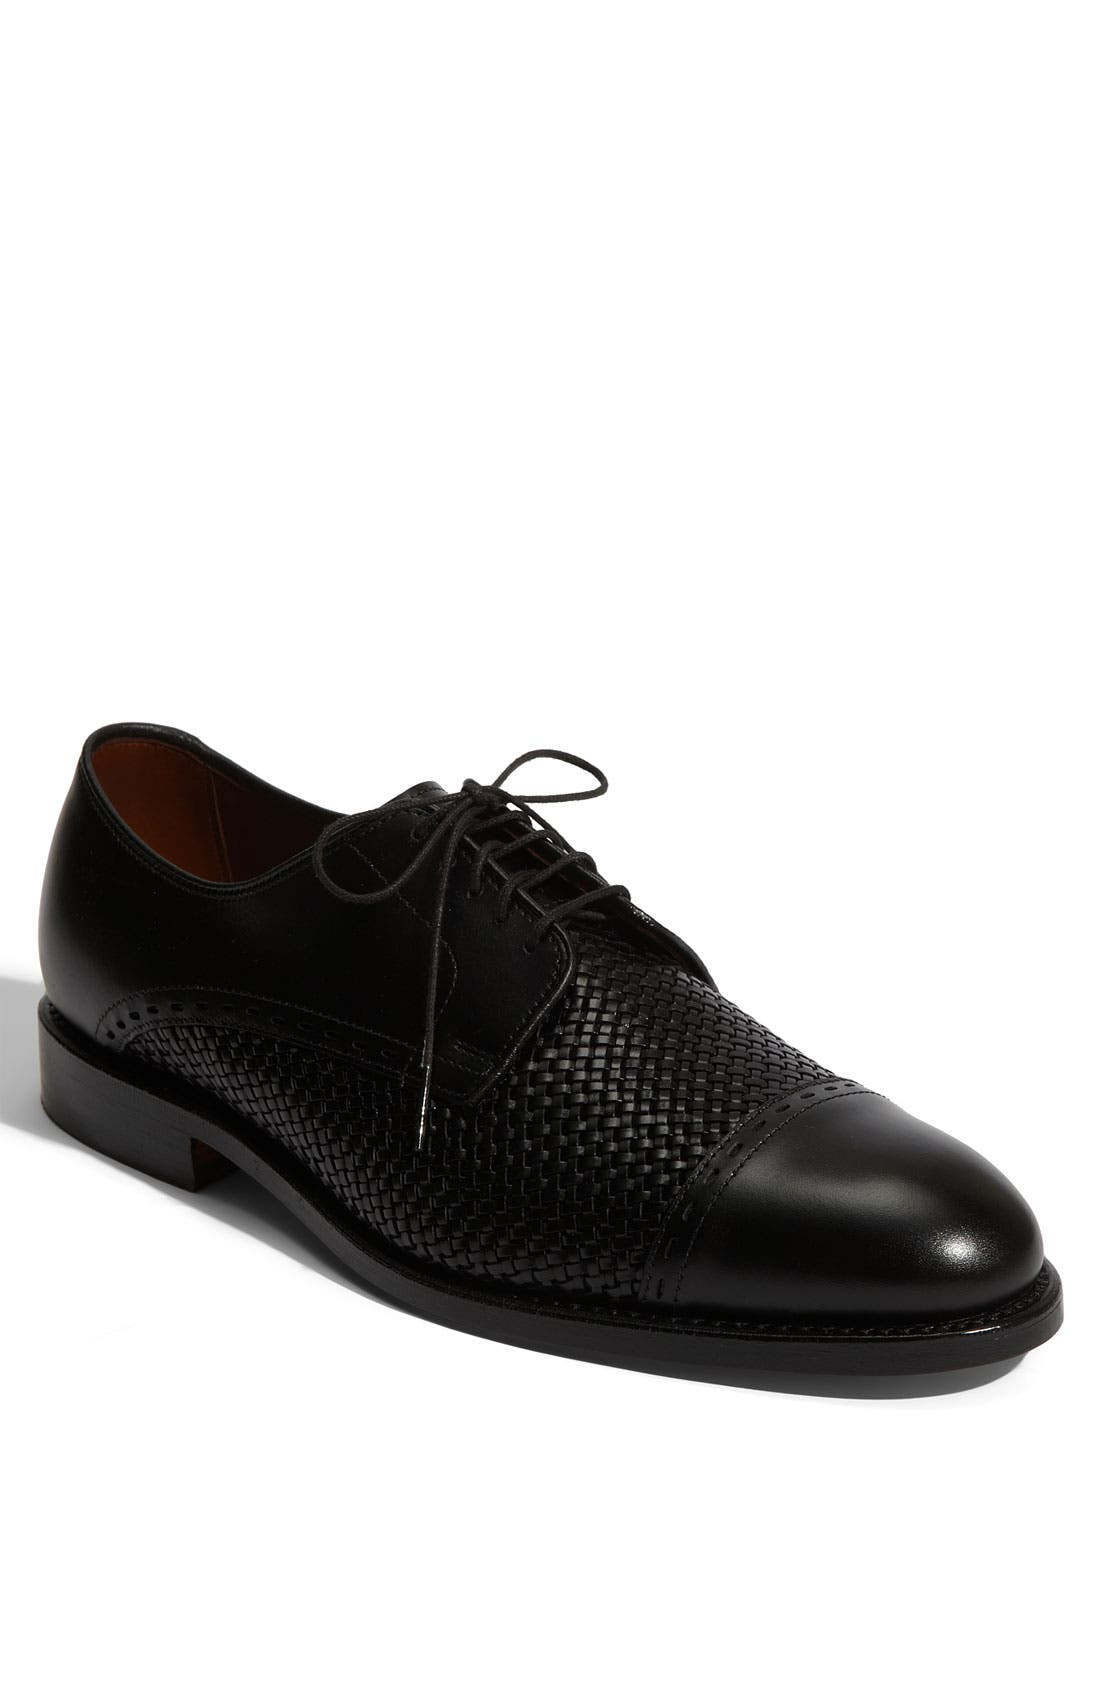 Alternate Image 1 Selected - Allen Edmonds 'New Orleans' Oxford